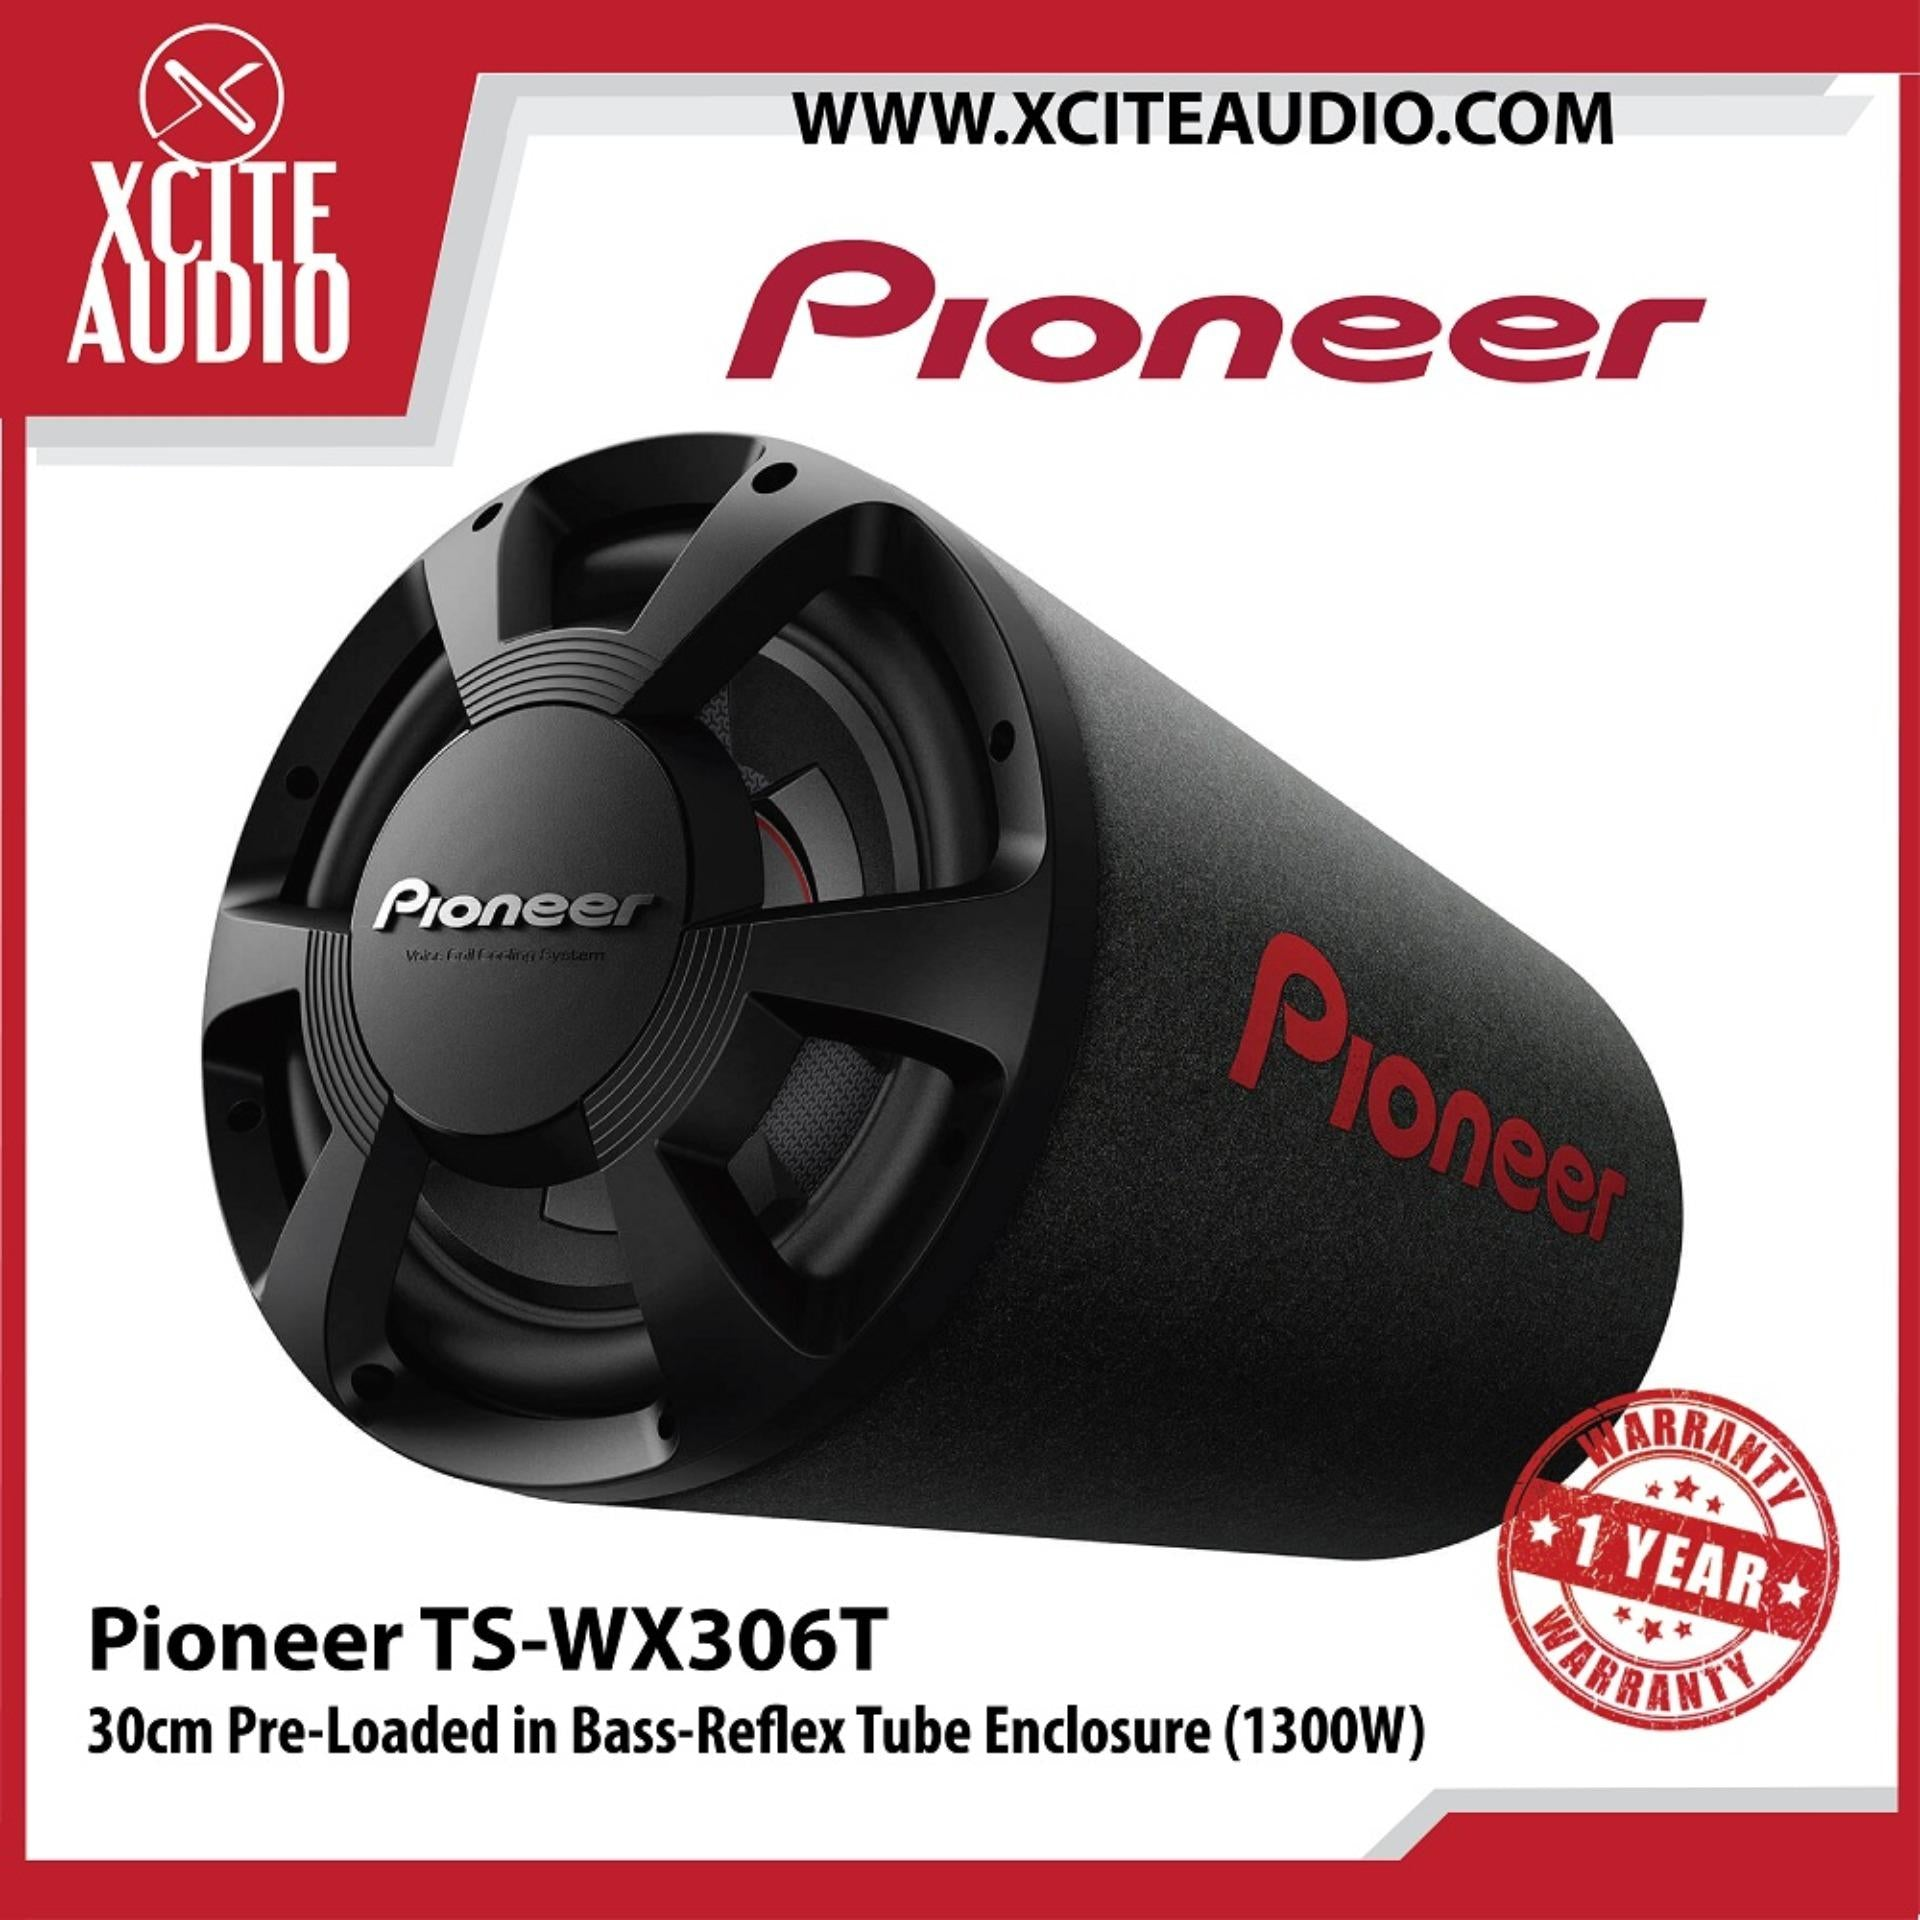 "Pioneer TS-WX306T 12"" 30cm 1300W Pre-Loaded in Bass-Reflex Tube Enclosure Subwoofer - Xcite Audio"